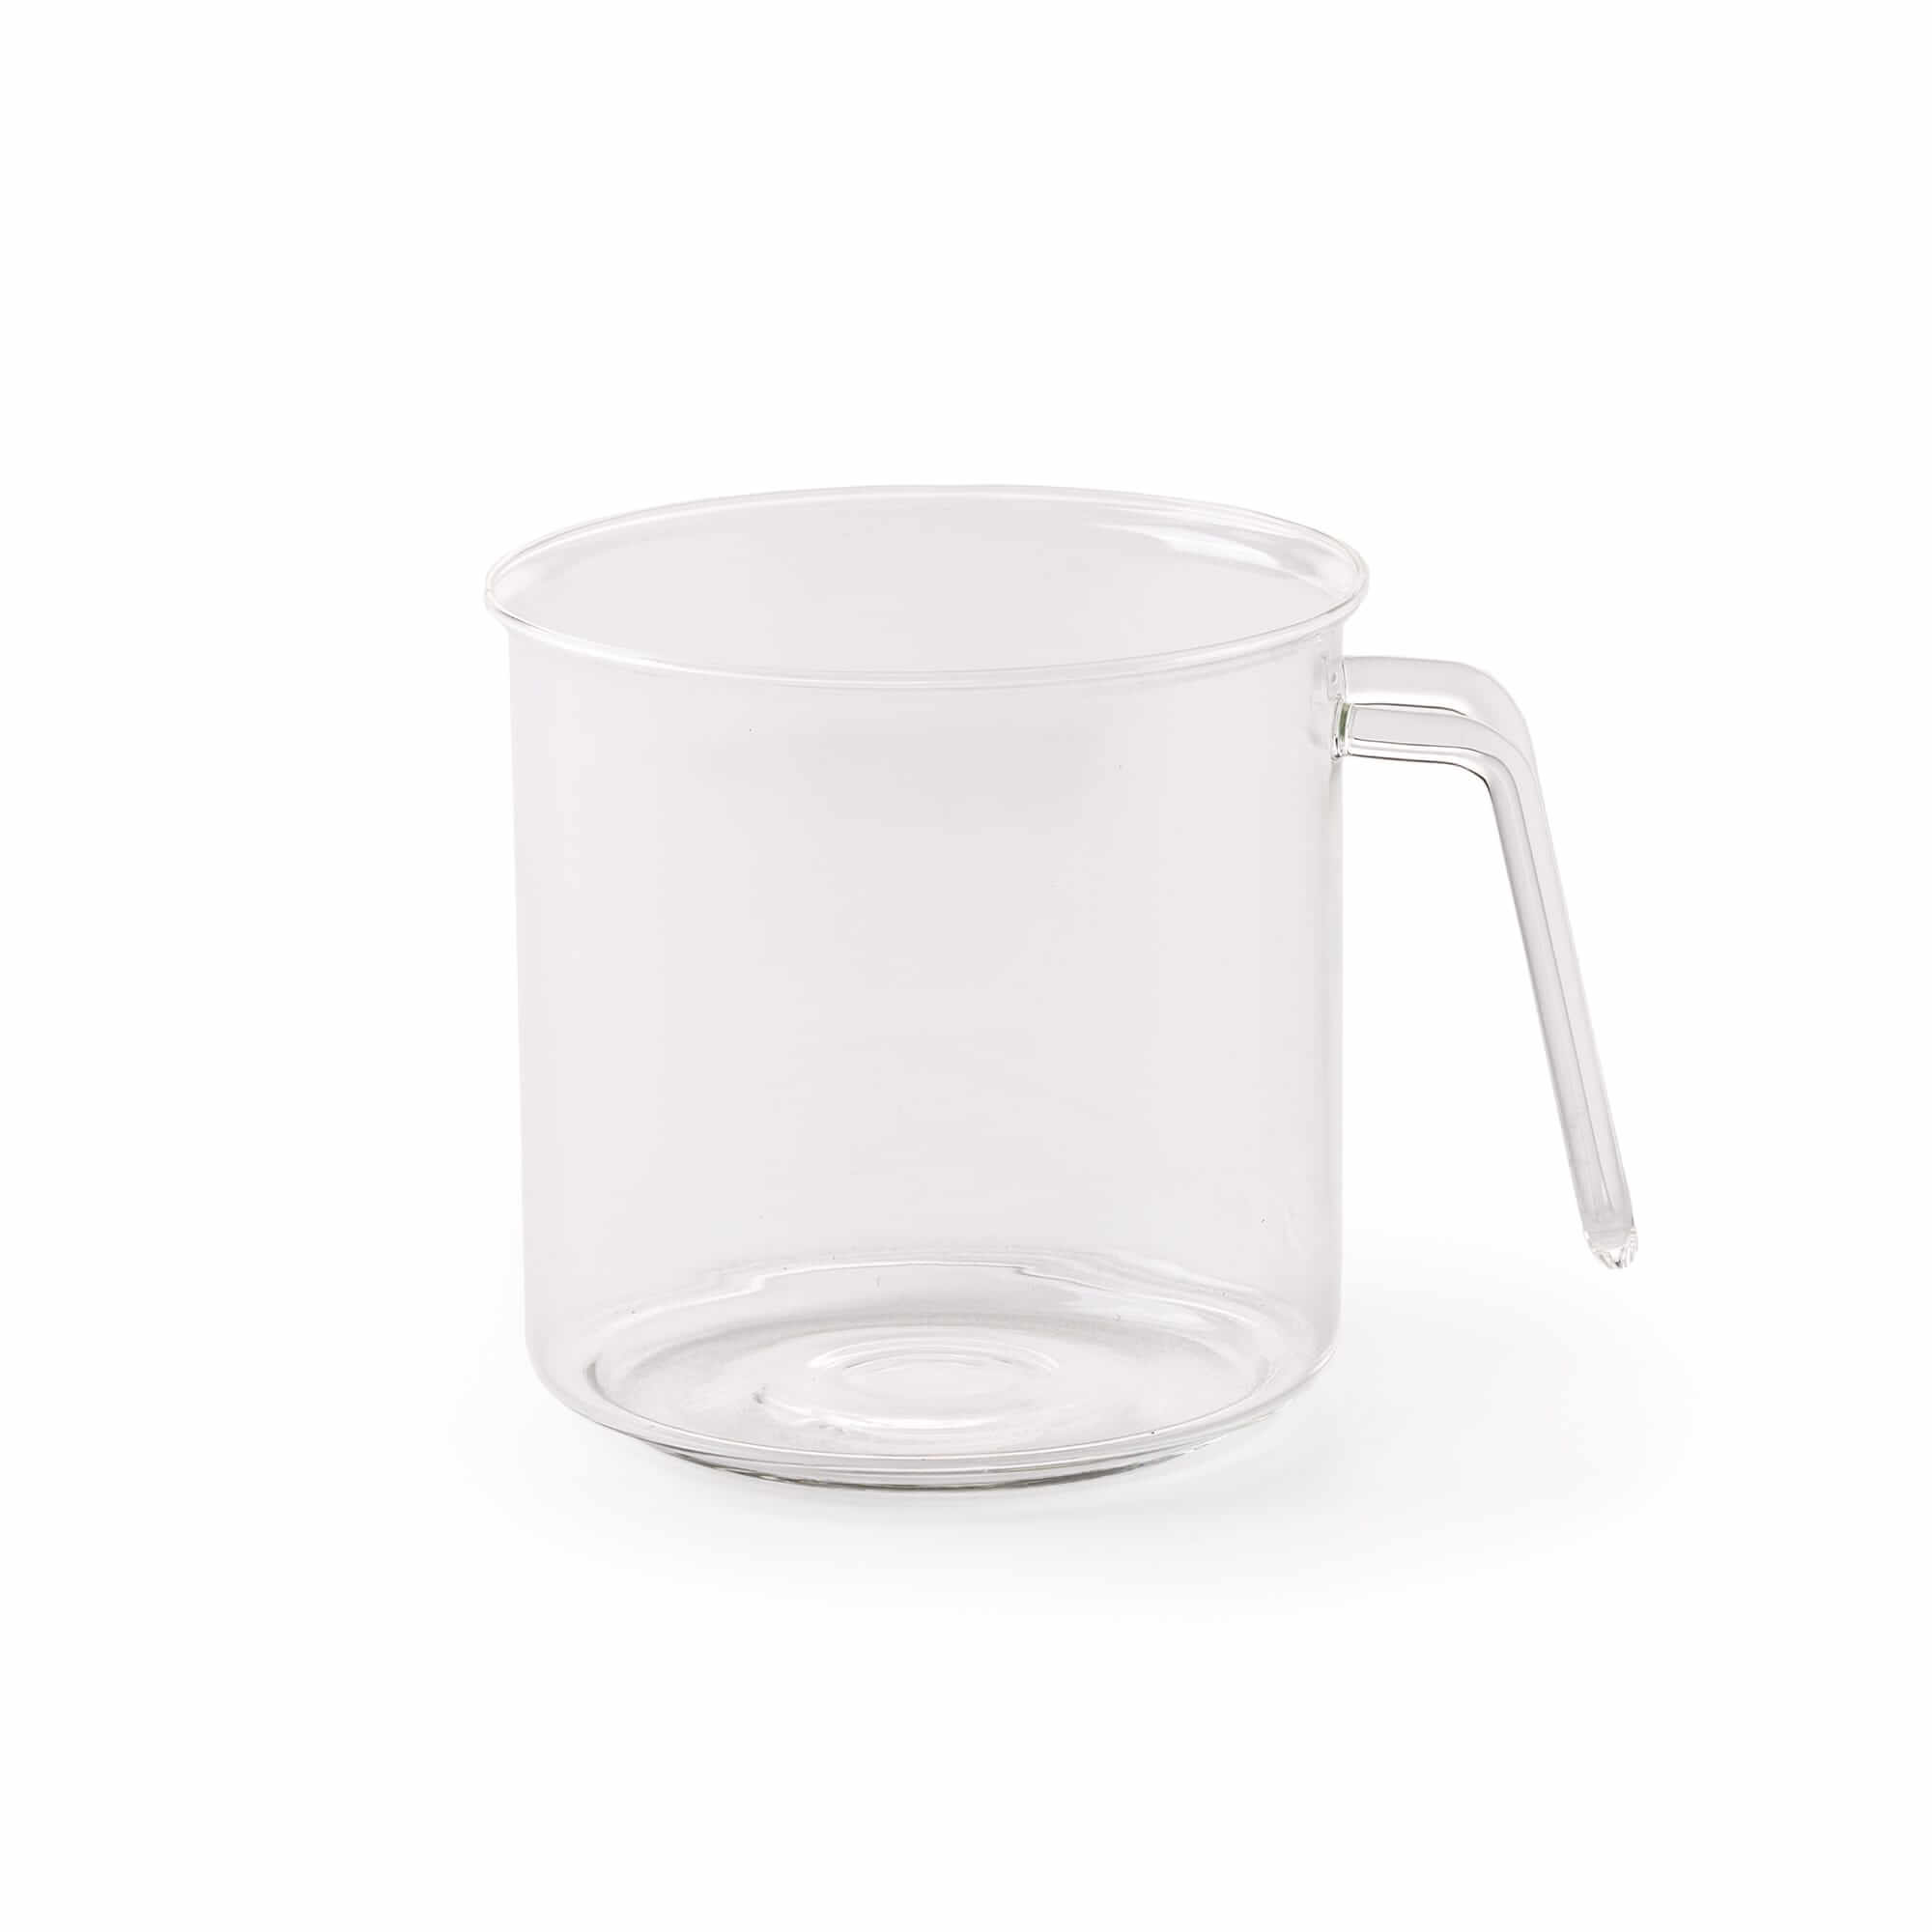 Seletti-Estetico-Quotidiano-The-Kettle (1)